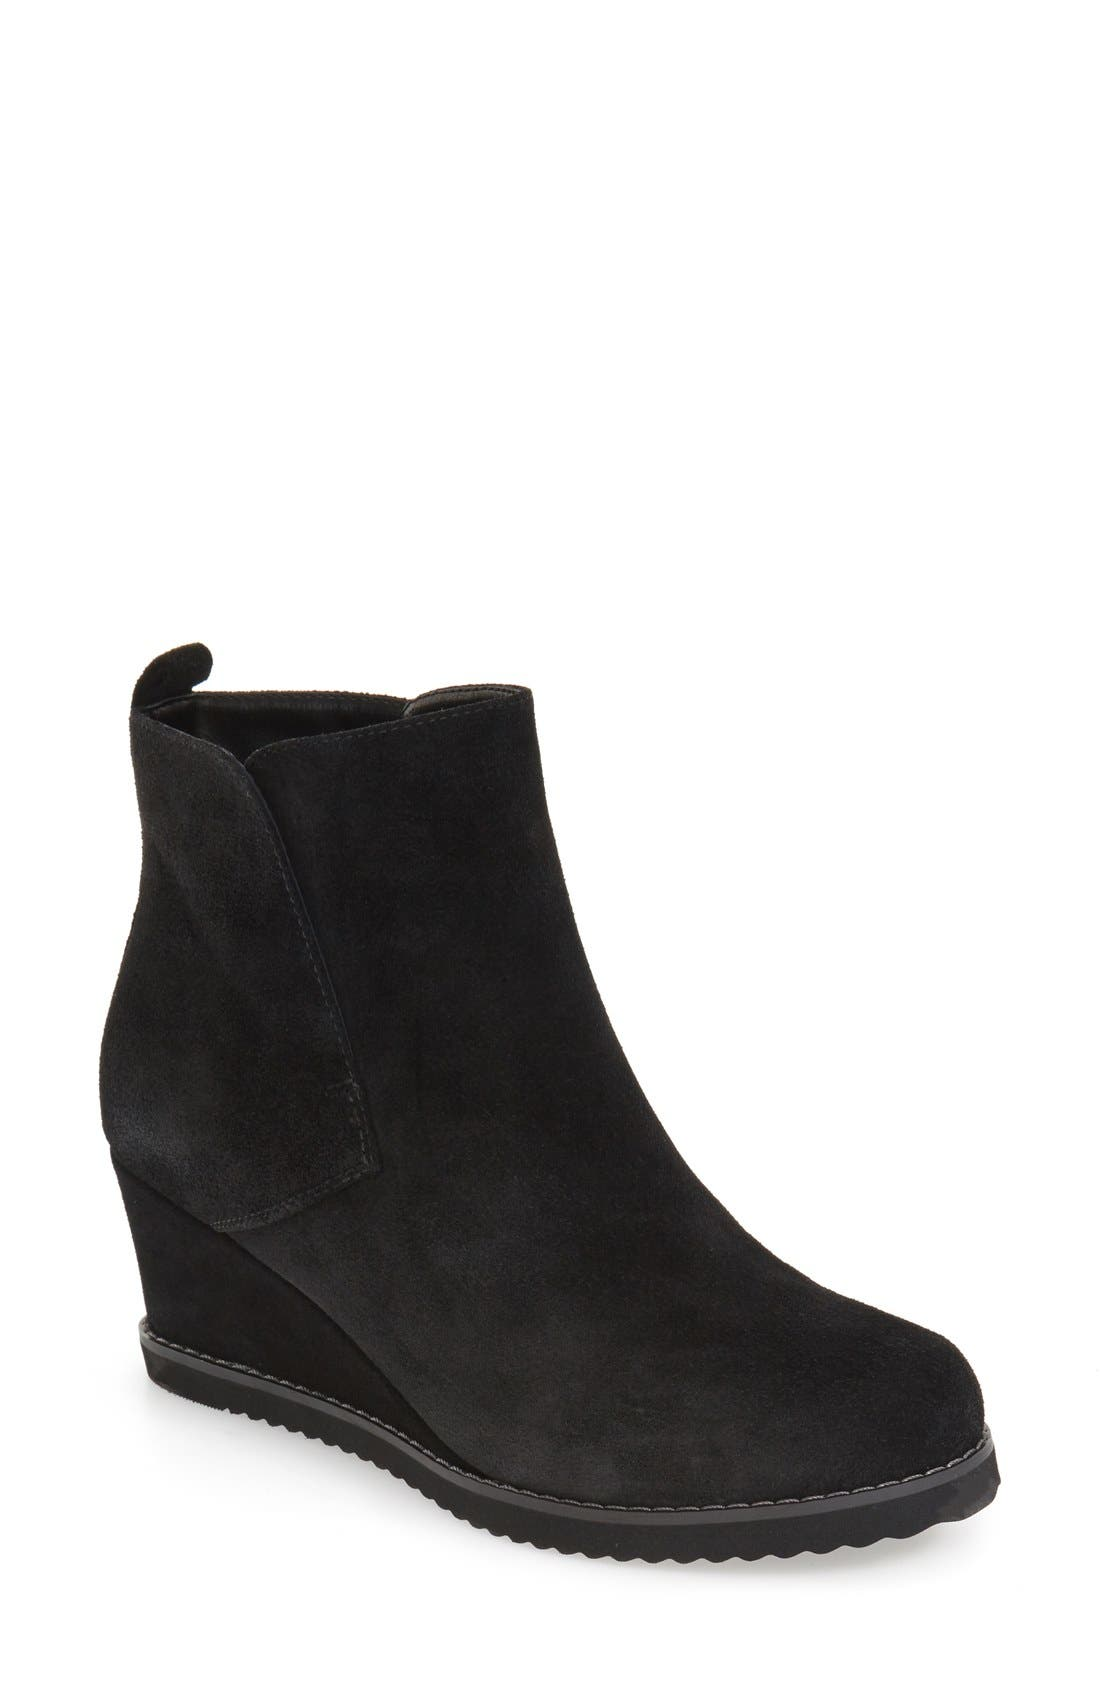 'Karla' Waterproof Wedge Bootie,                             Main thumbnail 2, color,